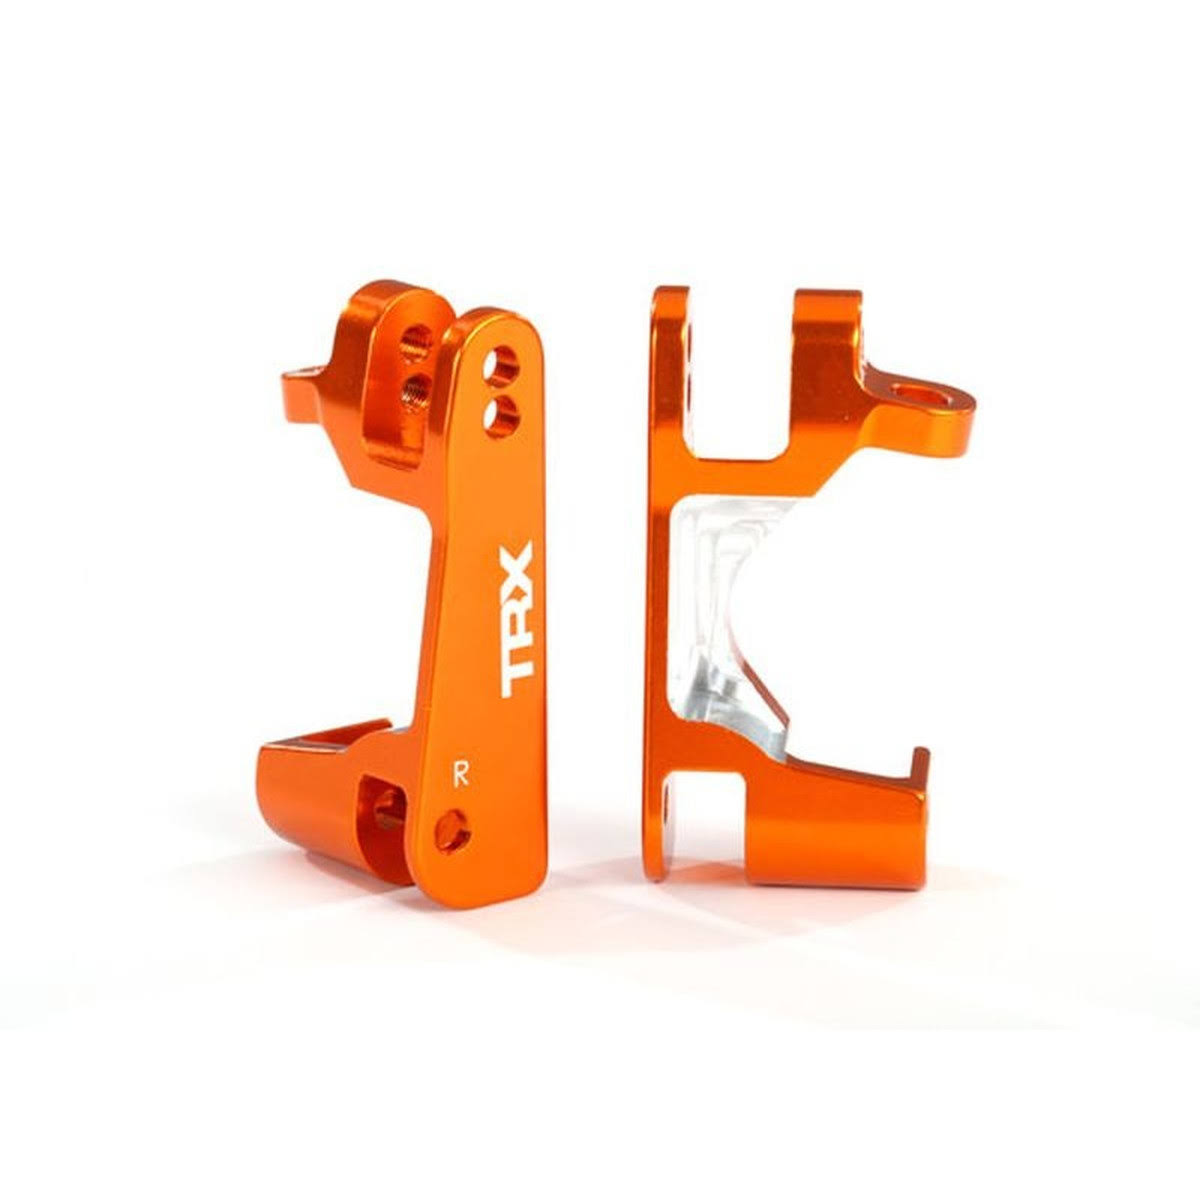 Marklin Caster Blocks (C-Hubs), 6061-T6 Aluminum (Orange-Anodized), Left & Right